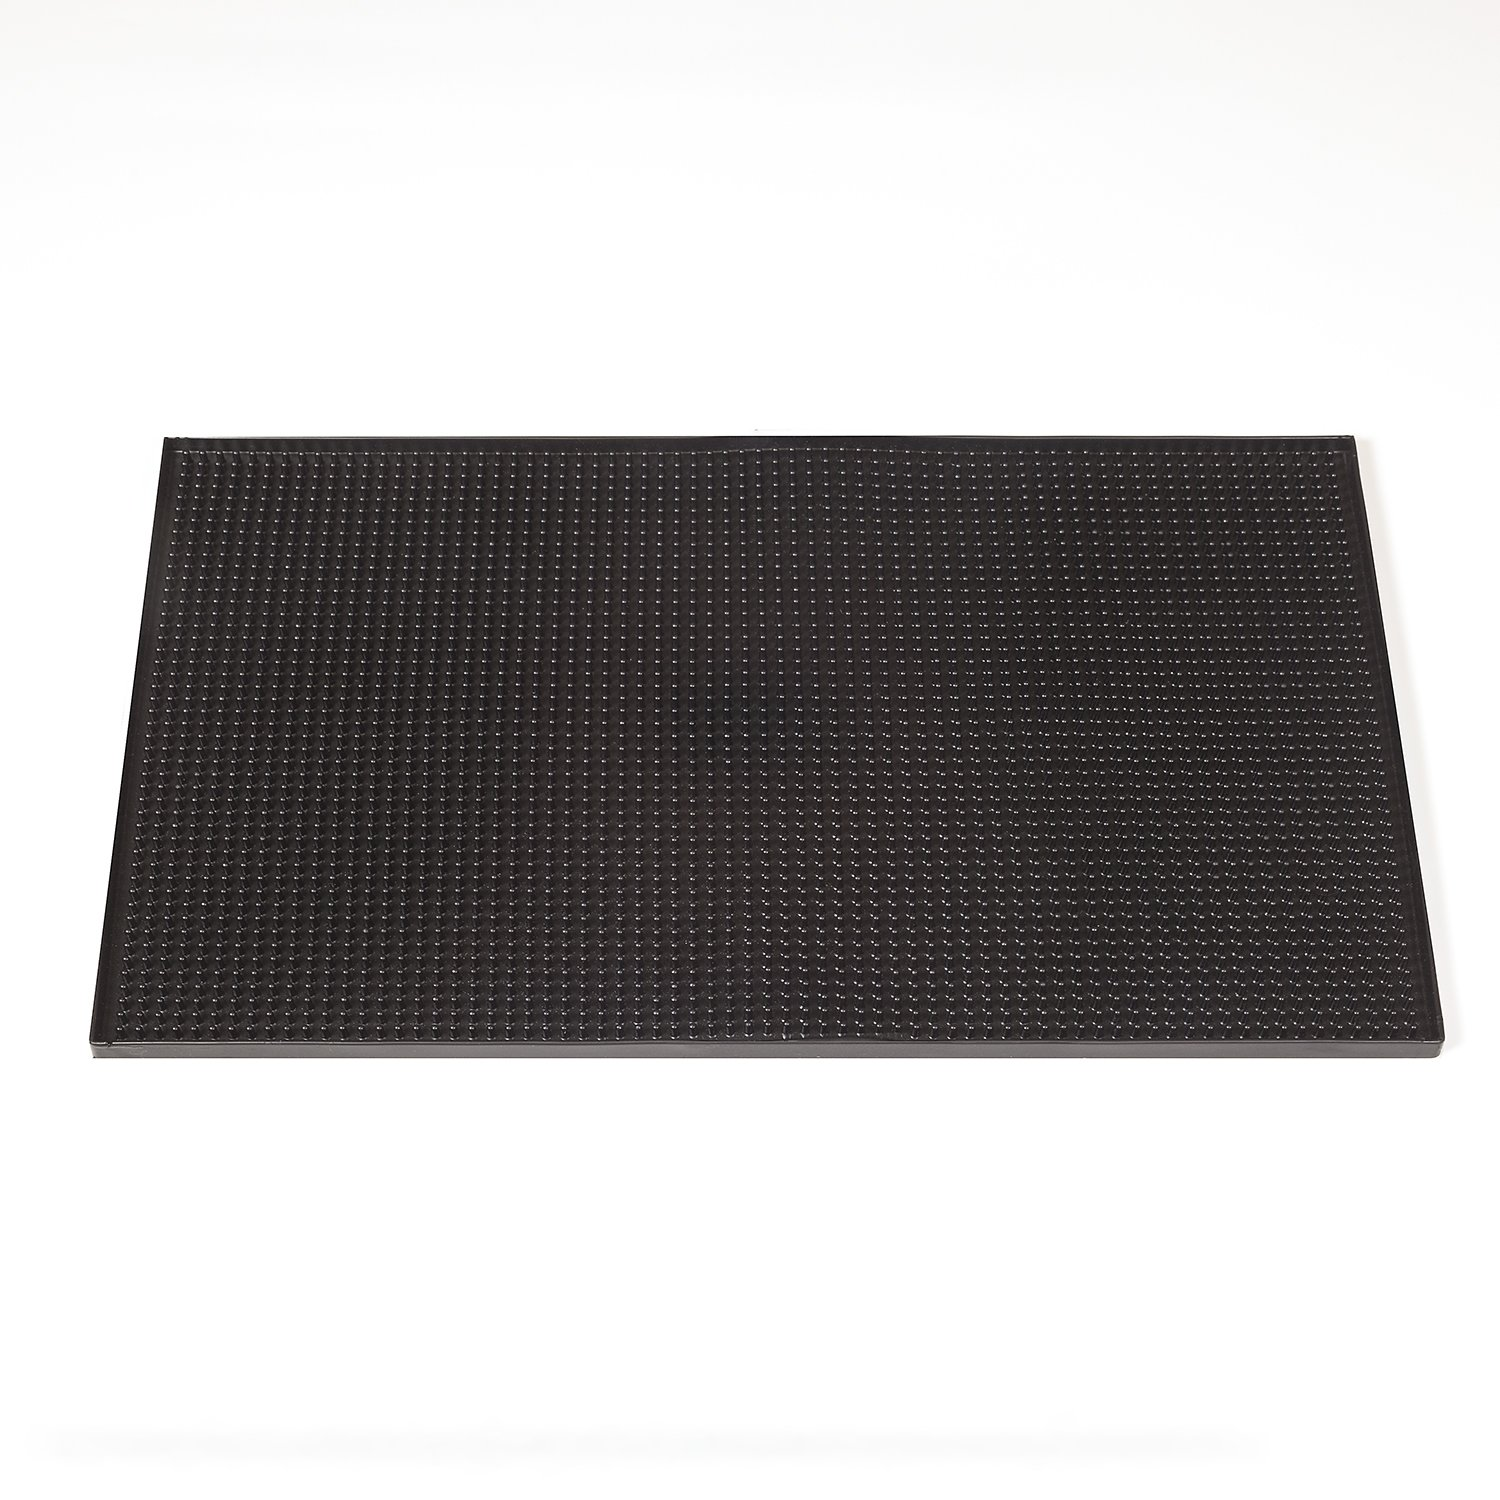 Professional Bar and Restaurant Service Mat To Protect Your Glass and Serving Area Easy To Rinse 12x18 Inch Prevents Water Marks and Spillage Black Includes Polishing Cloth Rubber Bar Mat Screaming Emu Marketing